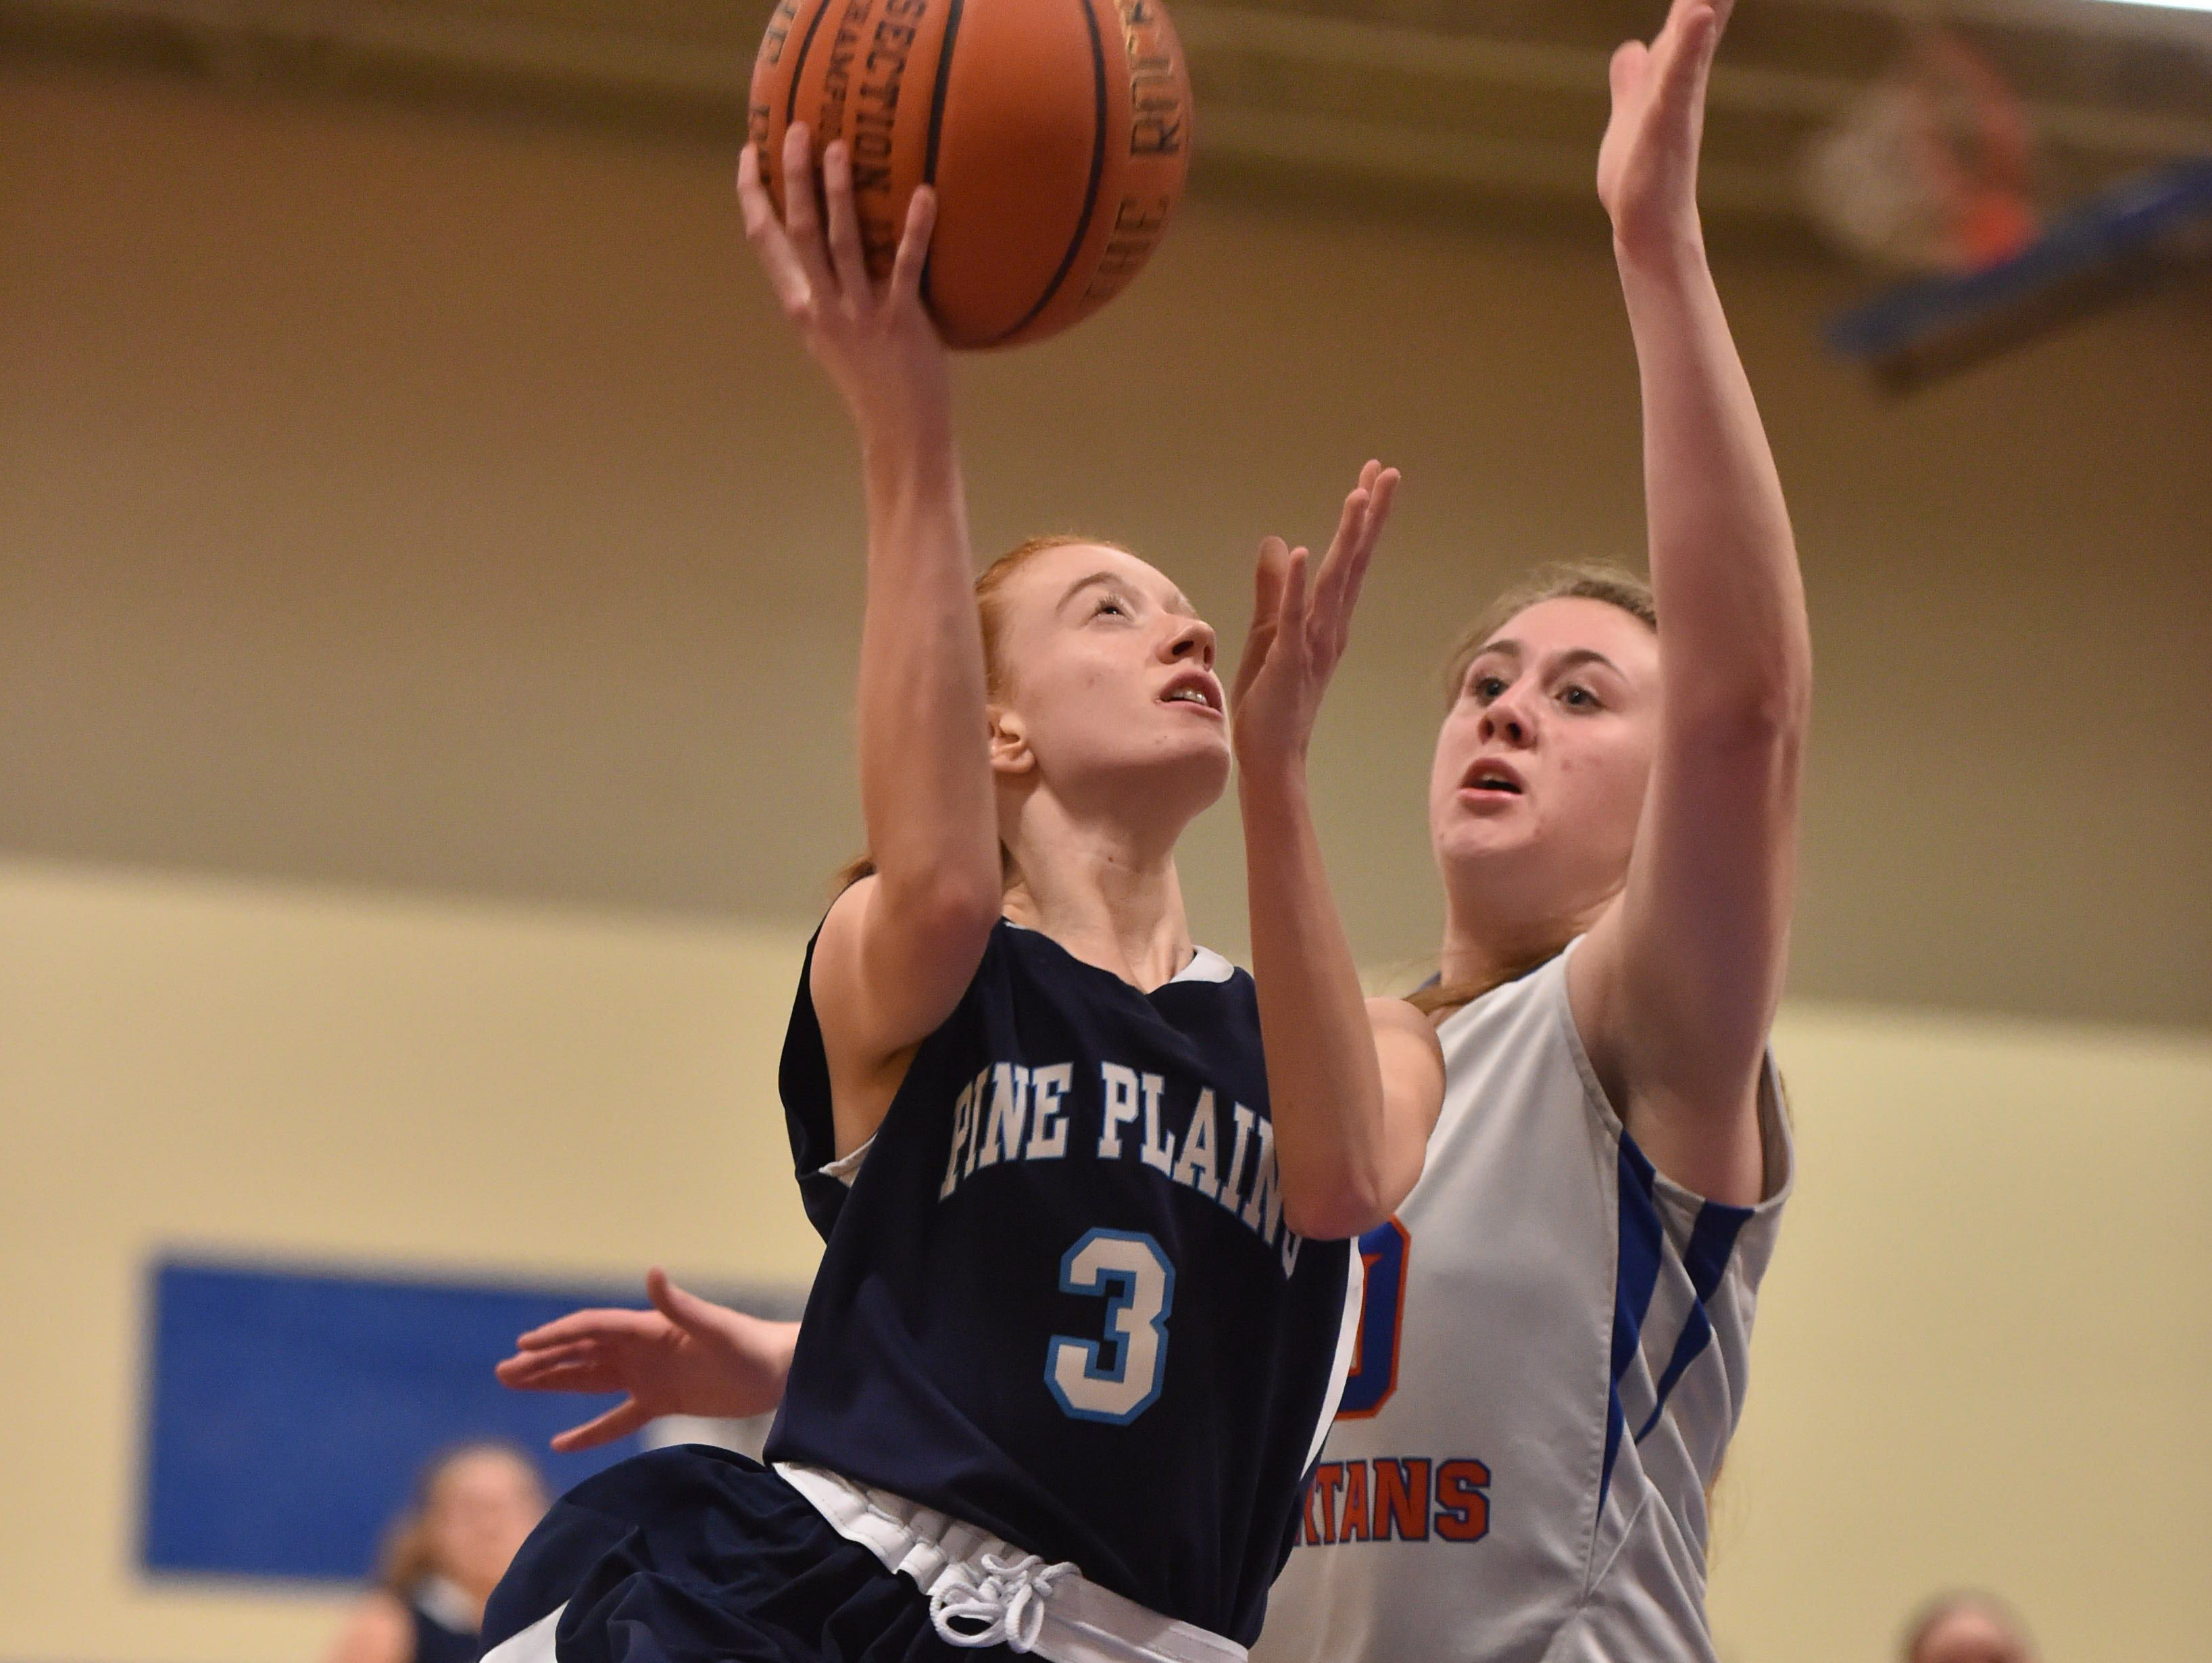 Pine Plains' Frances Snyder attempts a layup against S.S. Seward in the Section 9 Class C final last February.